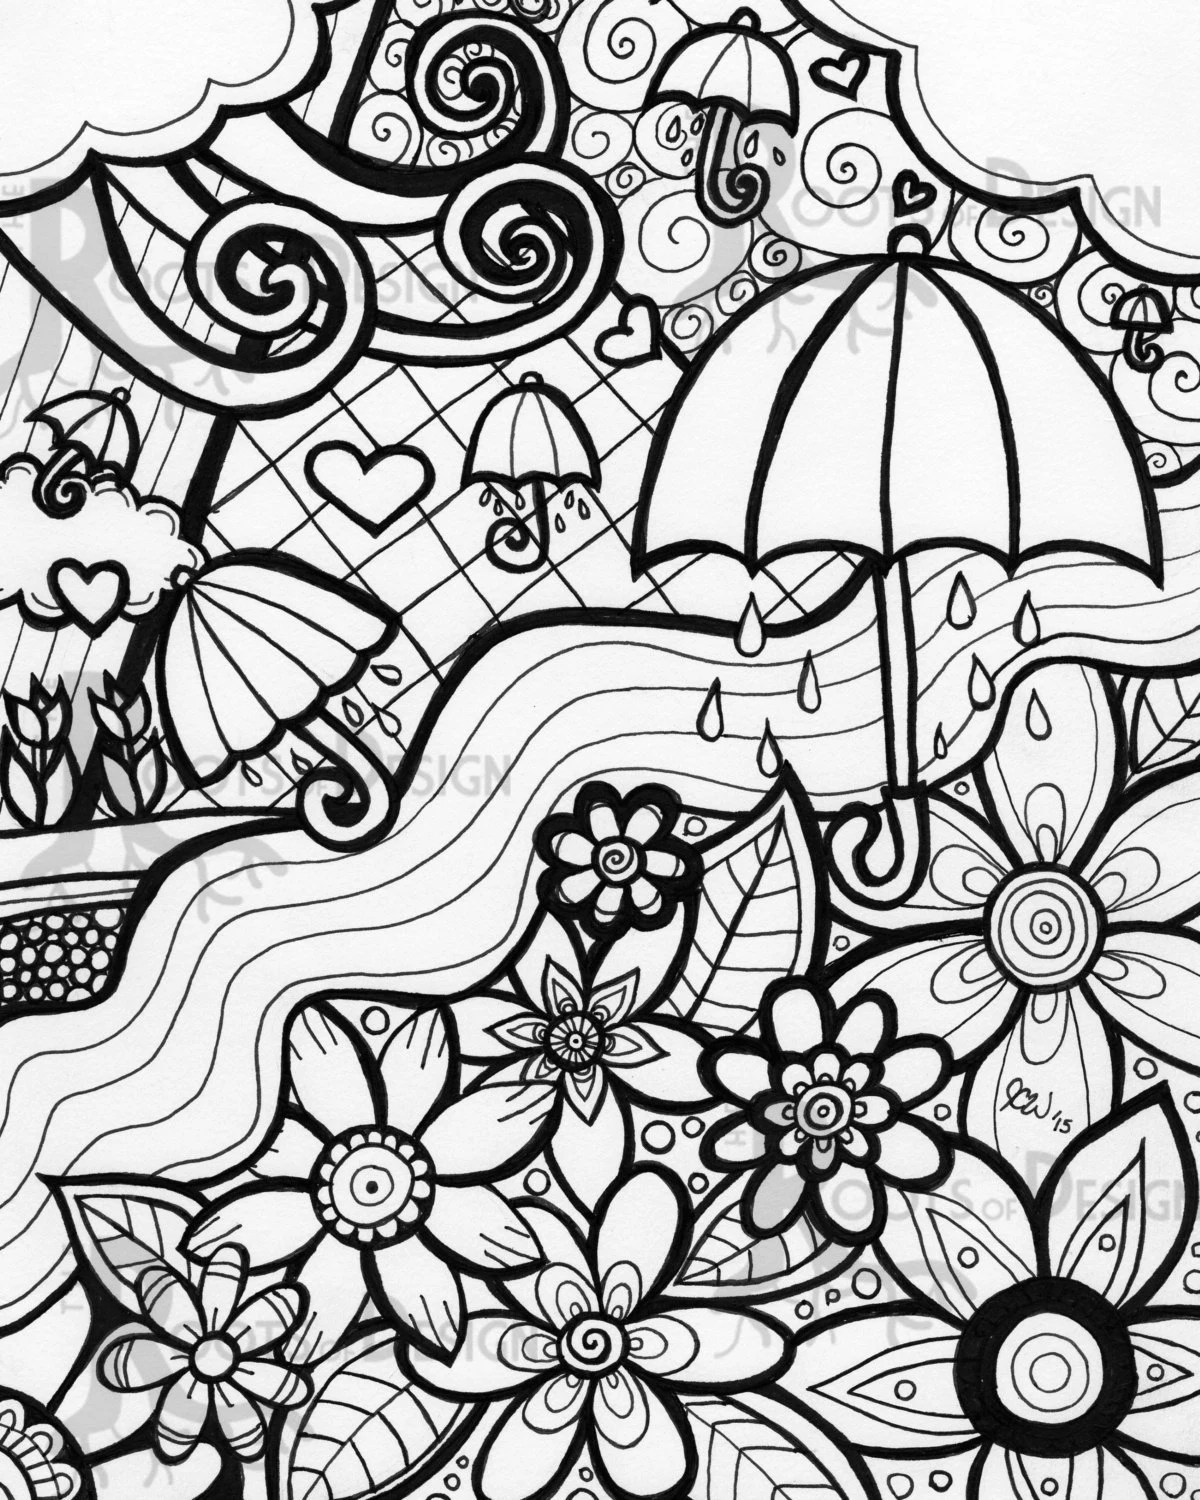 Instant Download Coloring Page April Showers Bring By